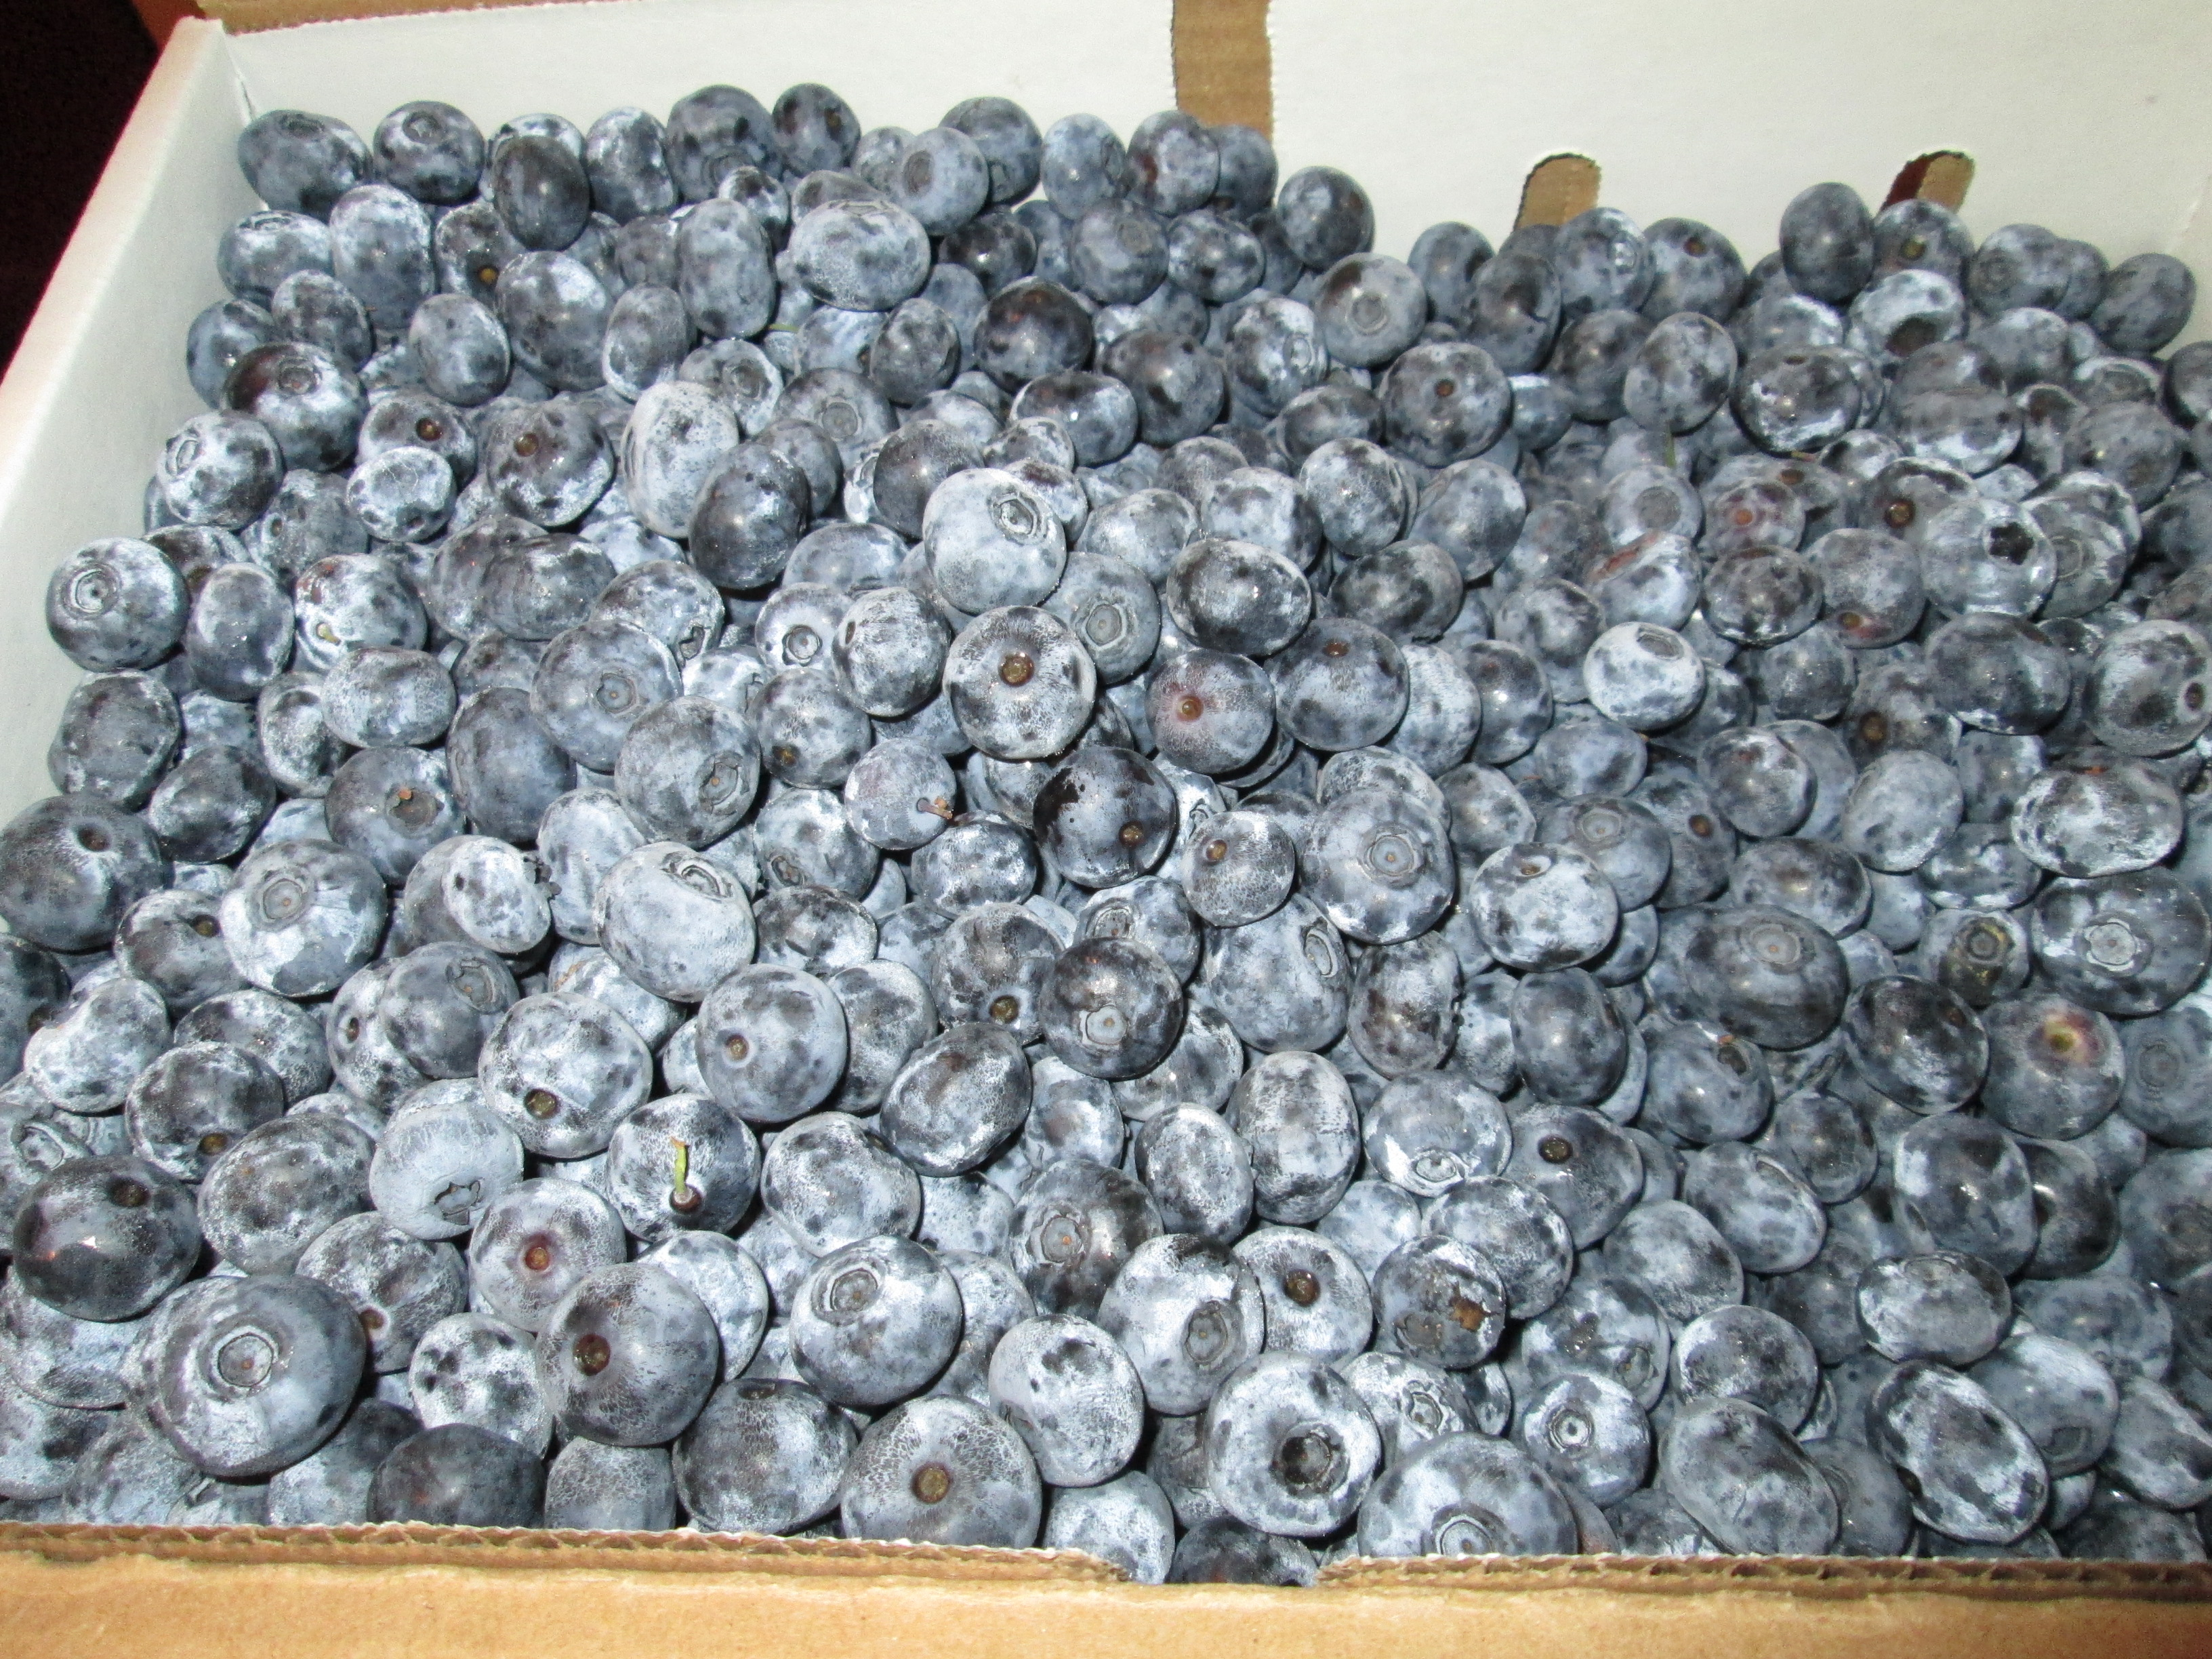 20 Pounds of Blueberries